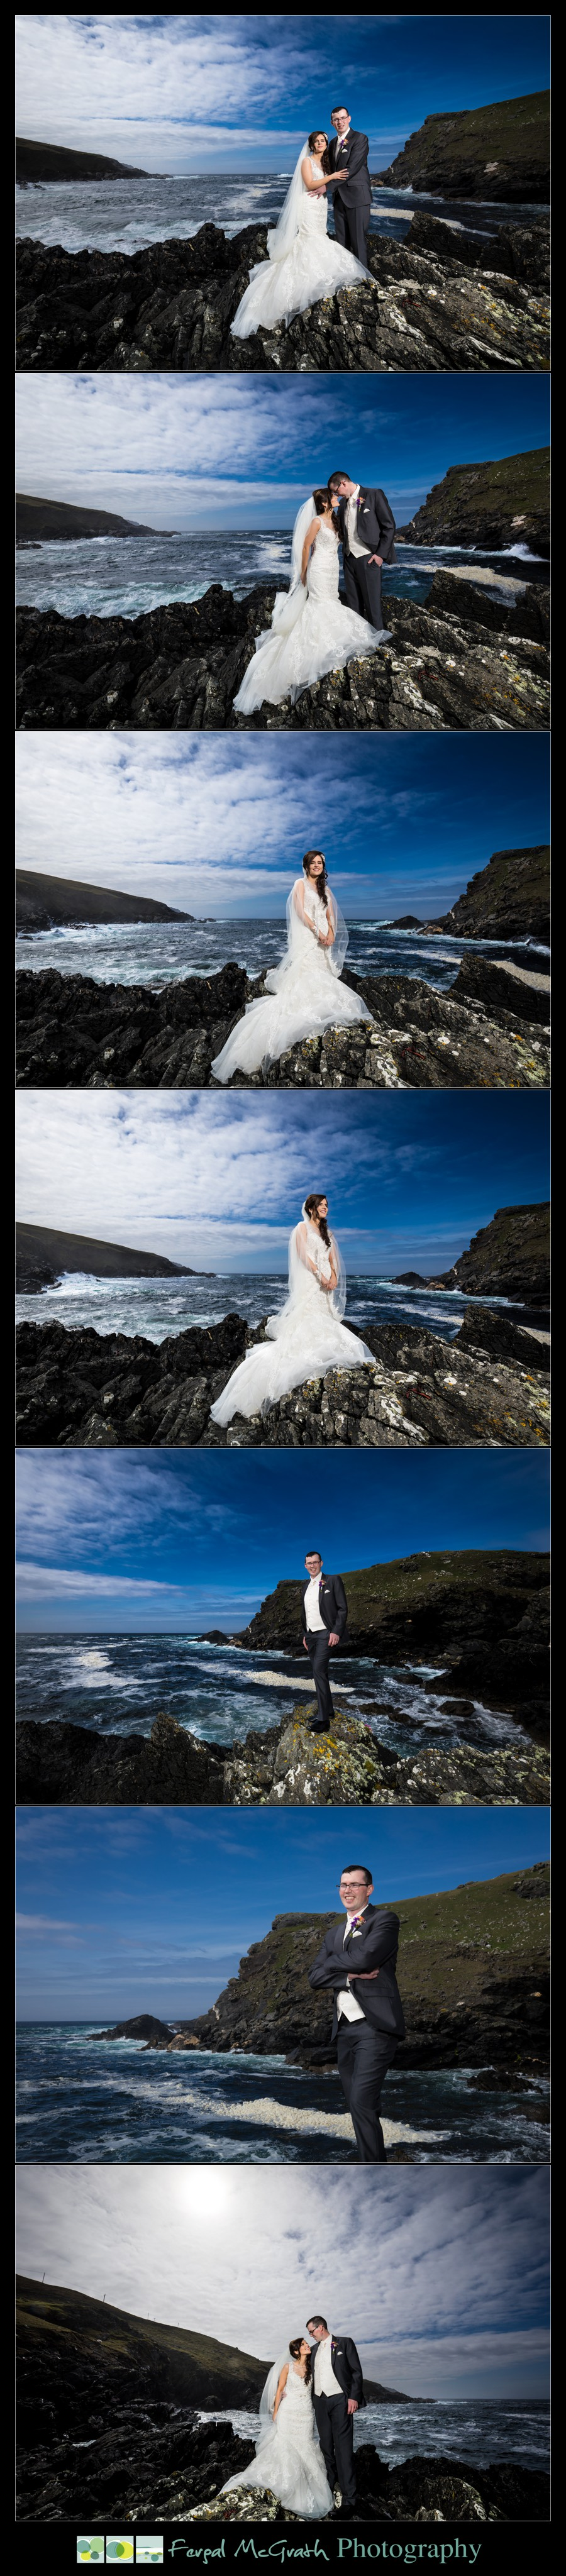 Glencolmcille wedding bride and groom photos by the ocean on the wild atlantic way in donegal